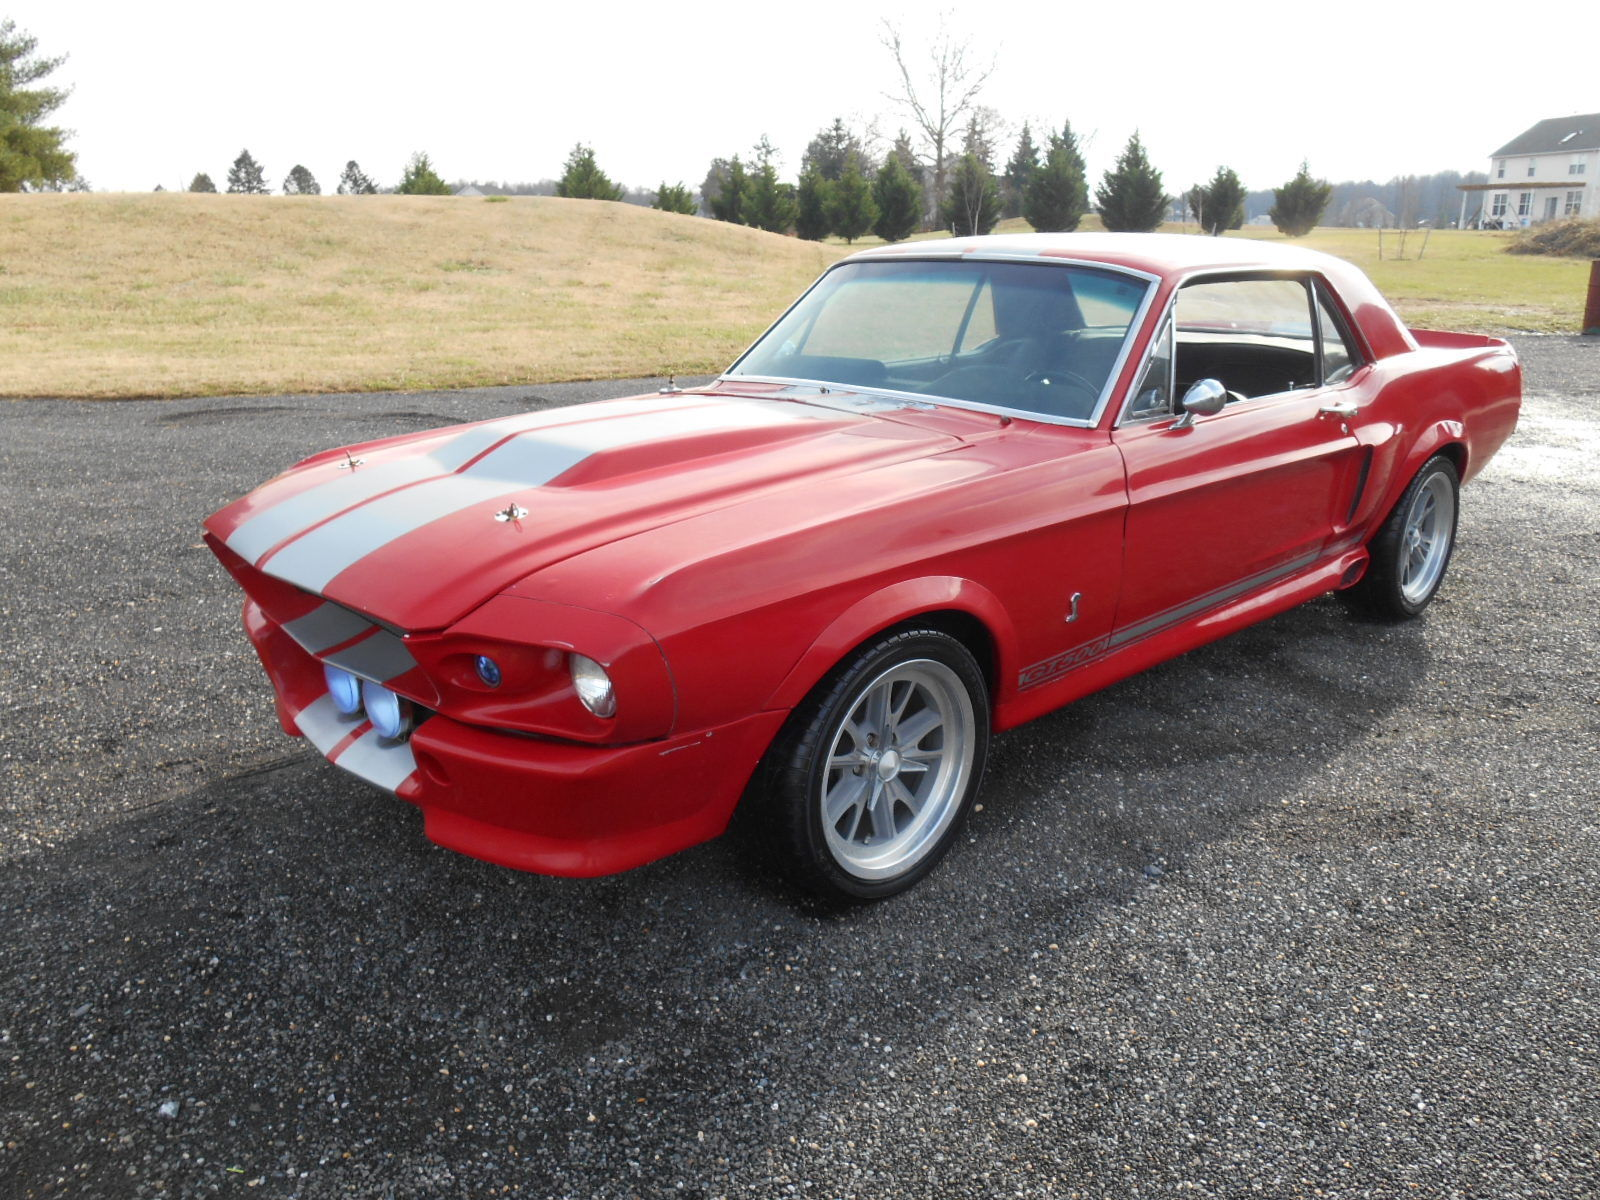 1967 ford mustang gt500 clone project cars for sale. Black Bedroom Furniture Sets. Home Design Ideas